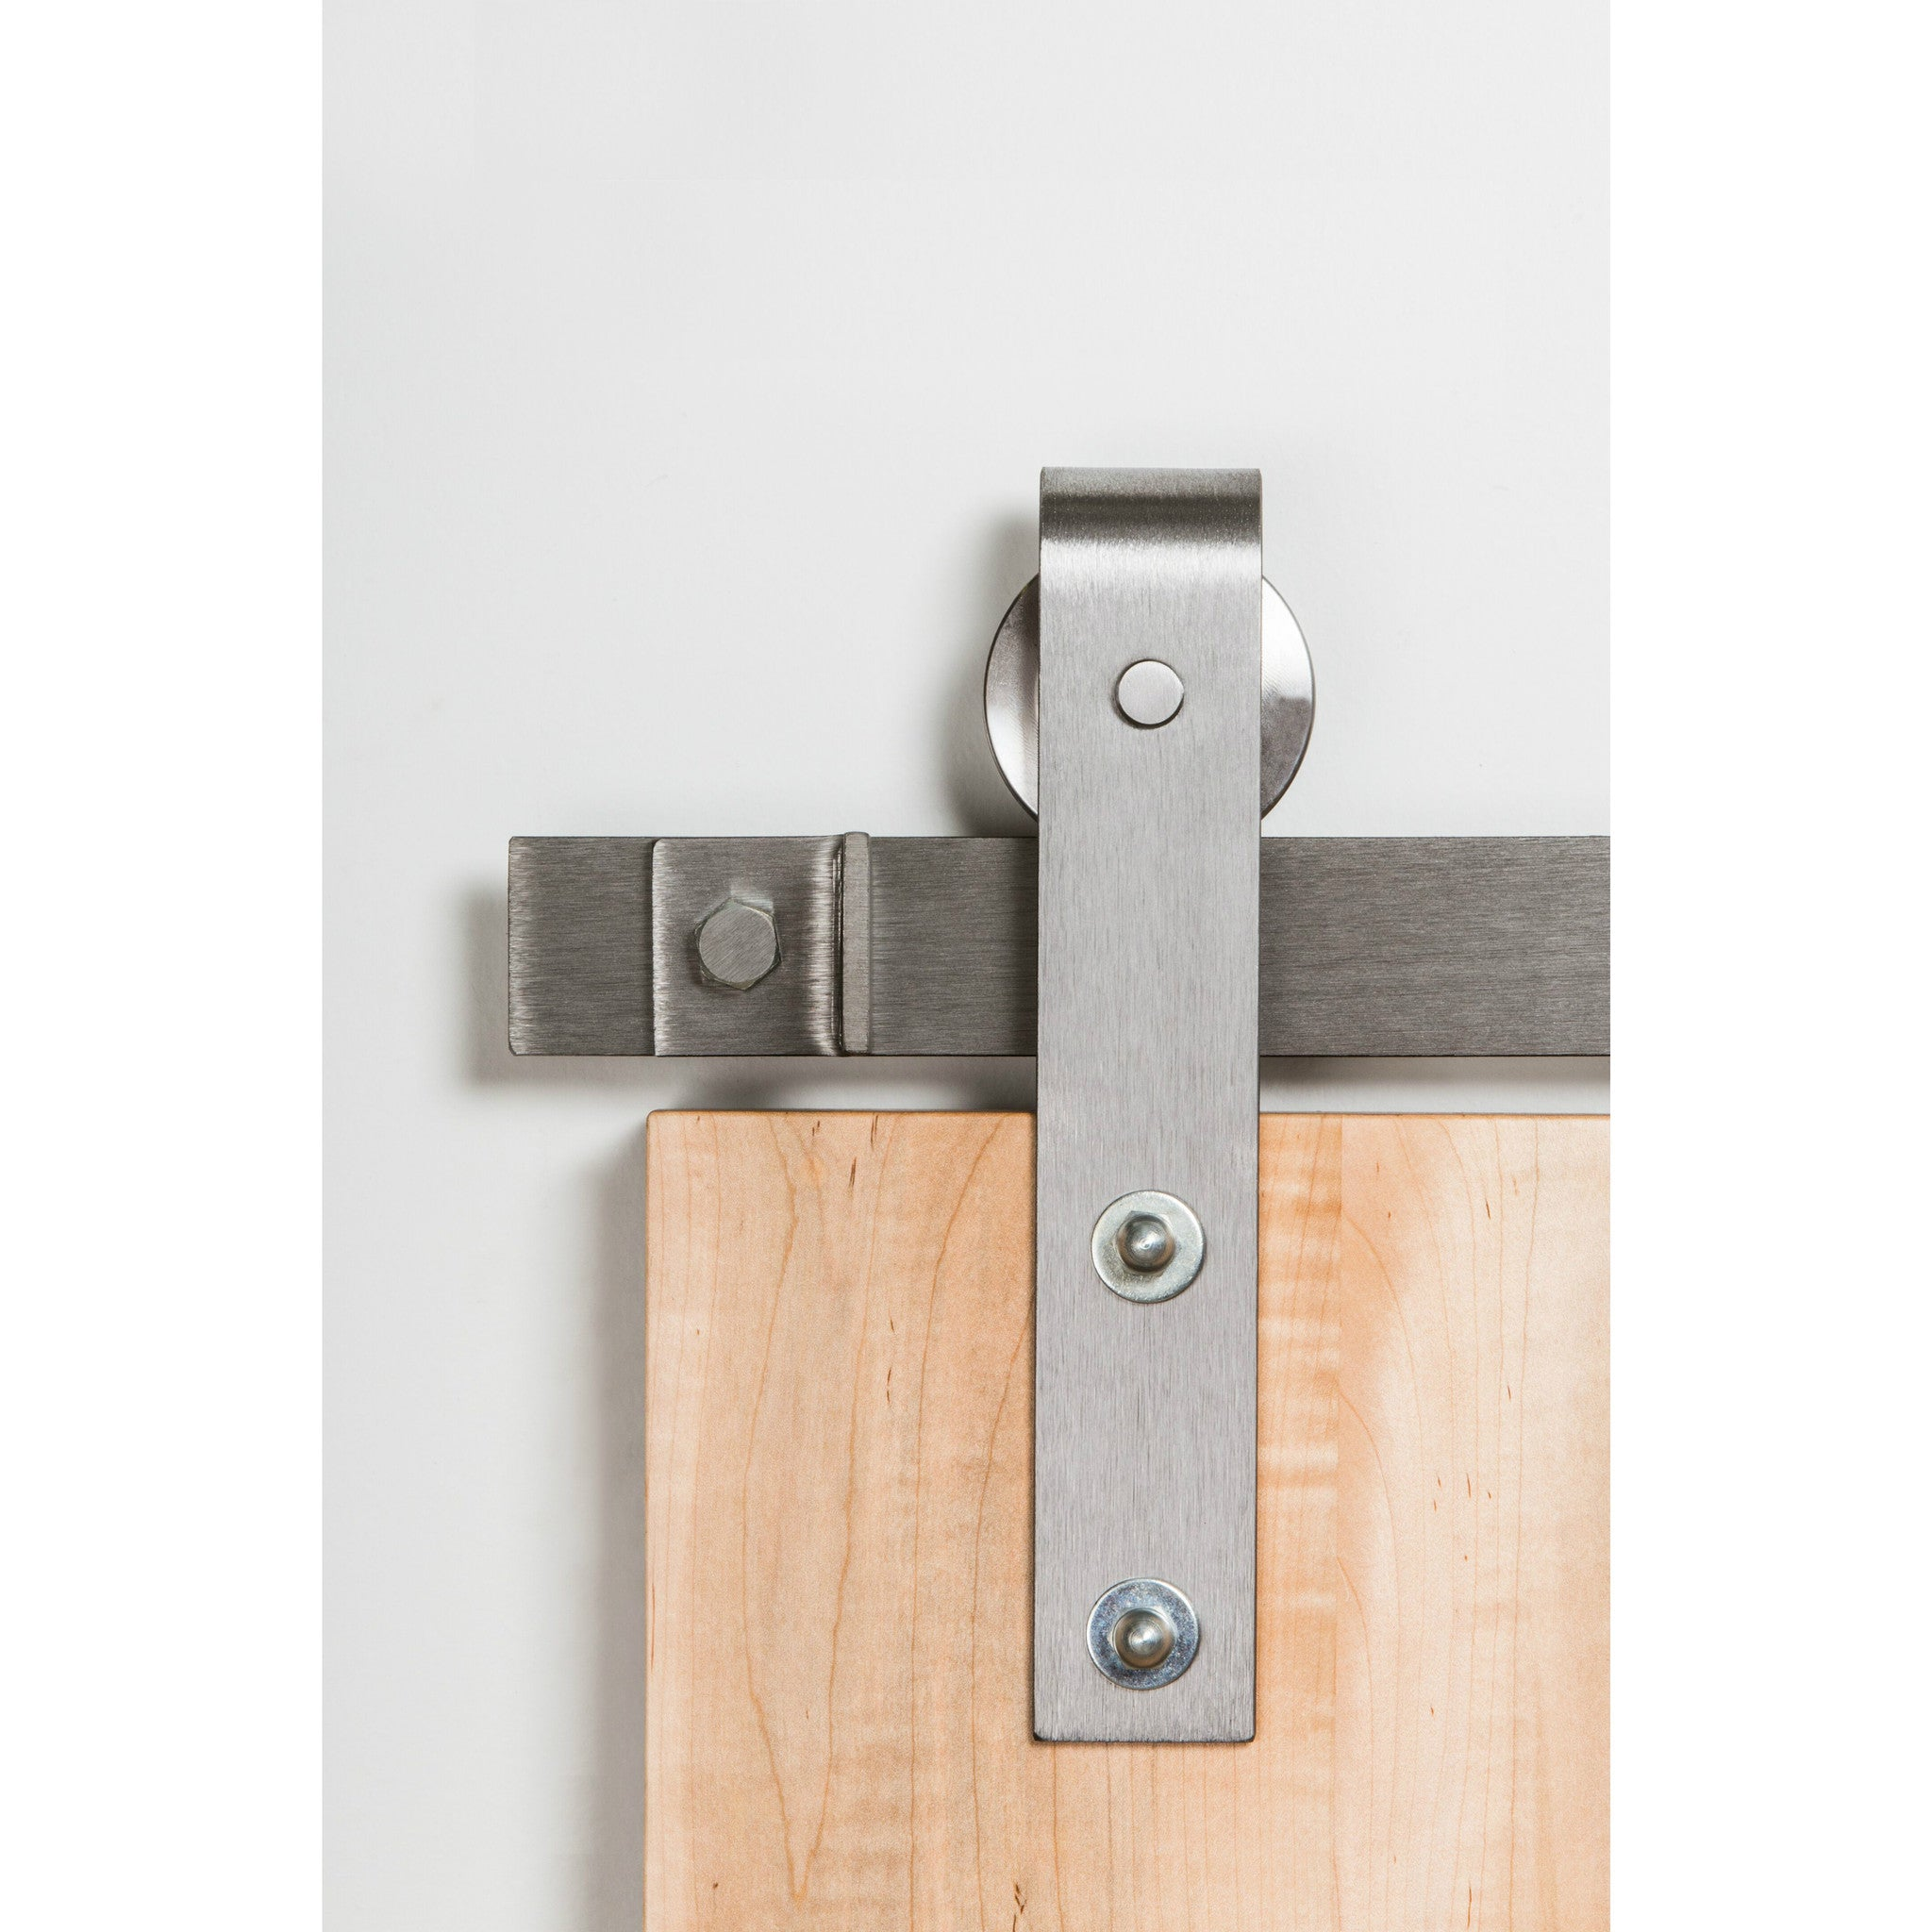 site hardware lockwood track barn en outland products sliding door australia lockweb barns lw lock